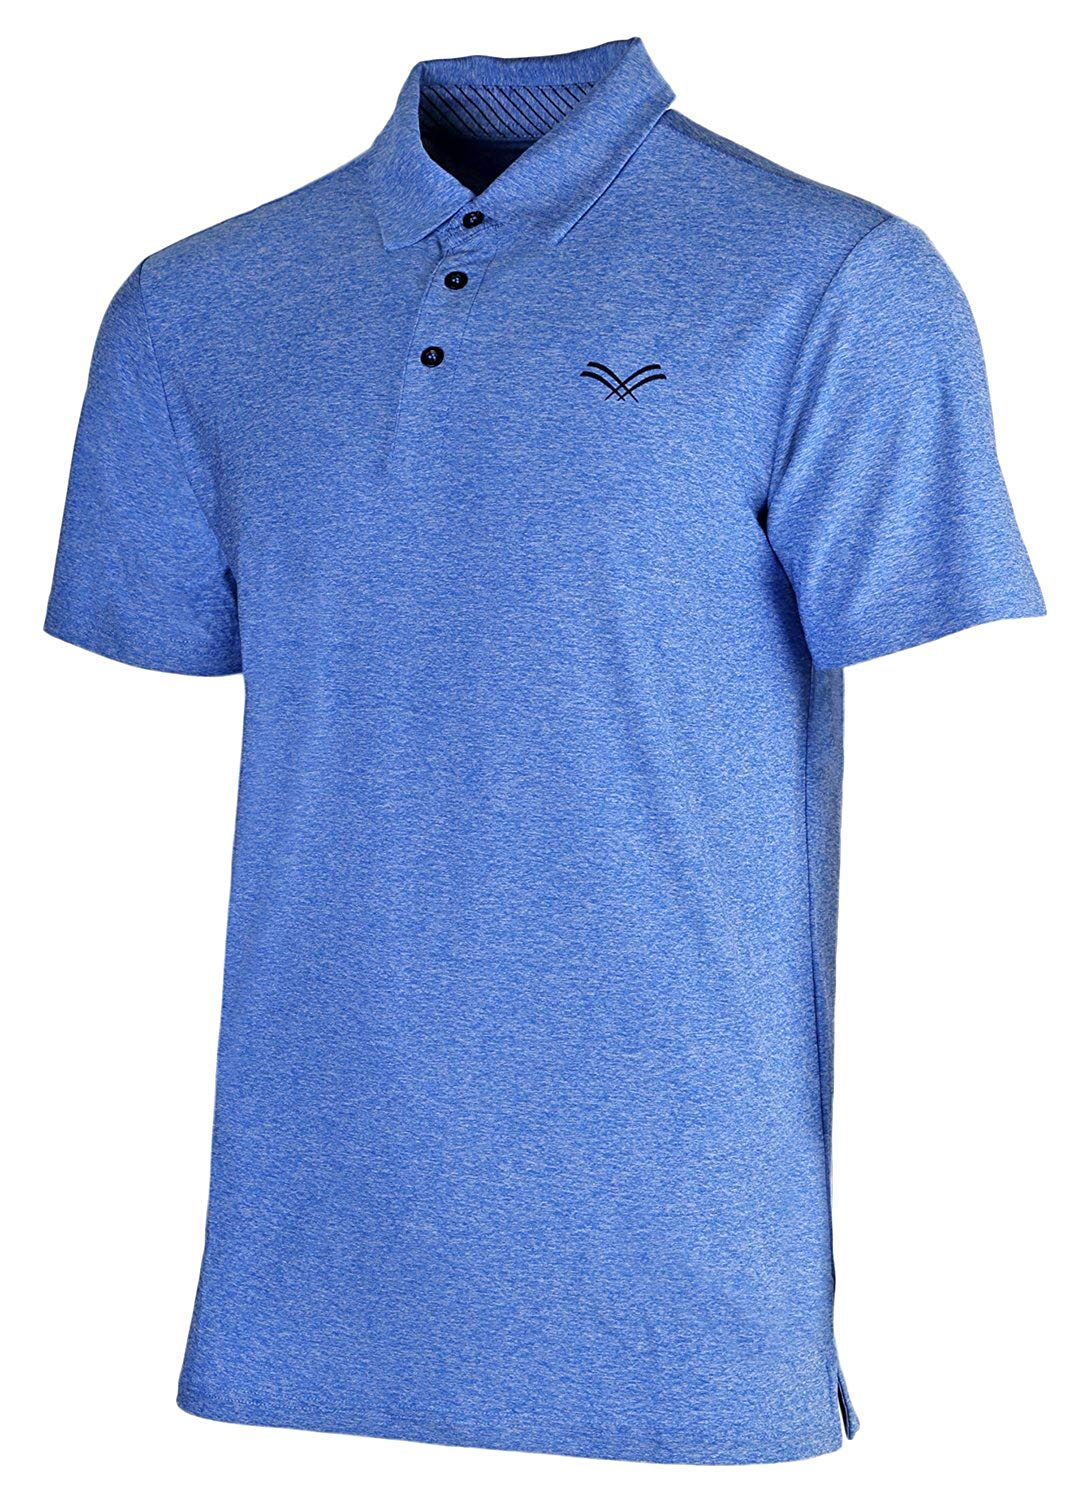 Cheap Dry Wicking Polo Shirts Find Dry Wicking Polo Shirts Deals On